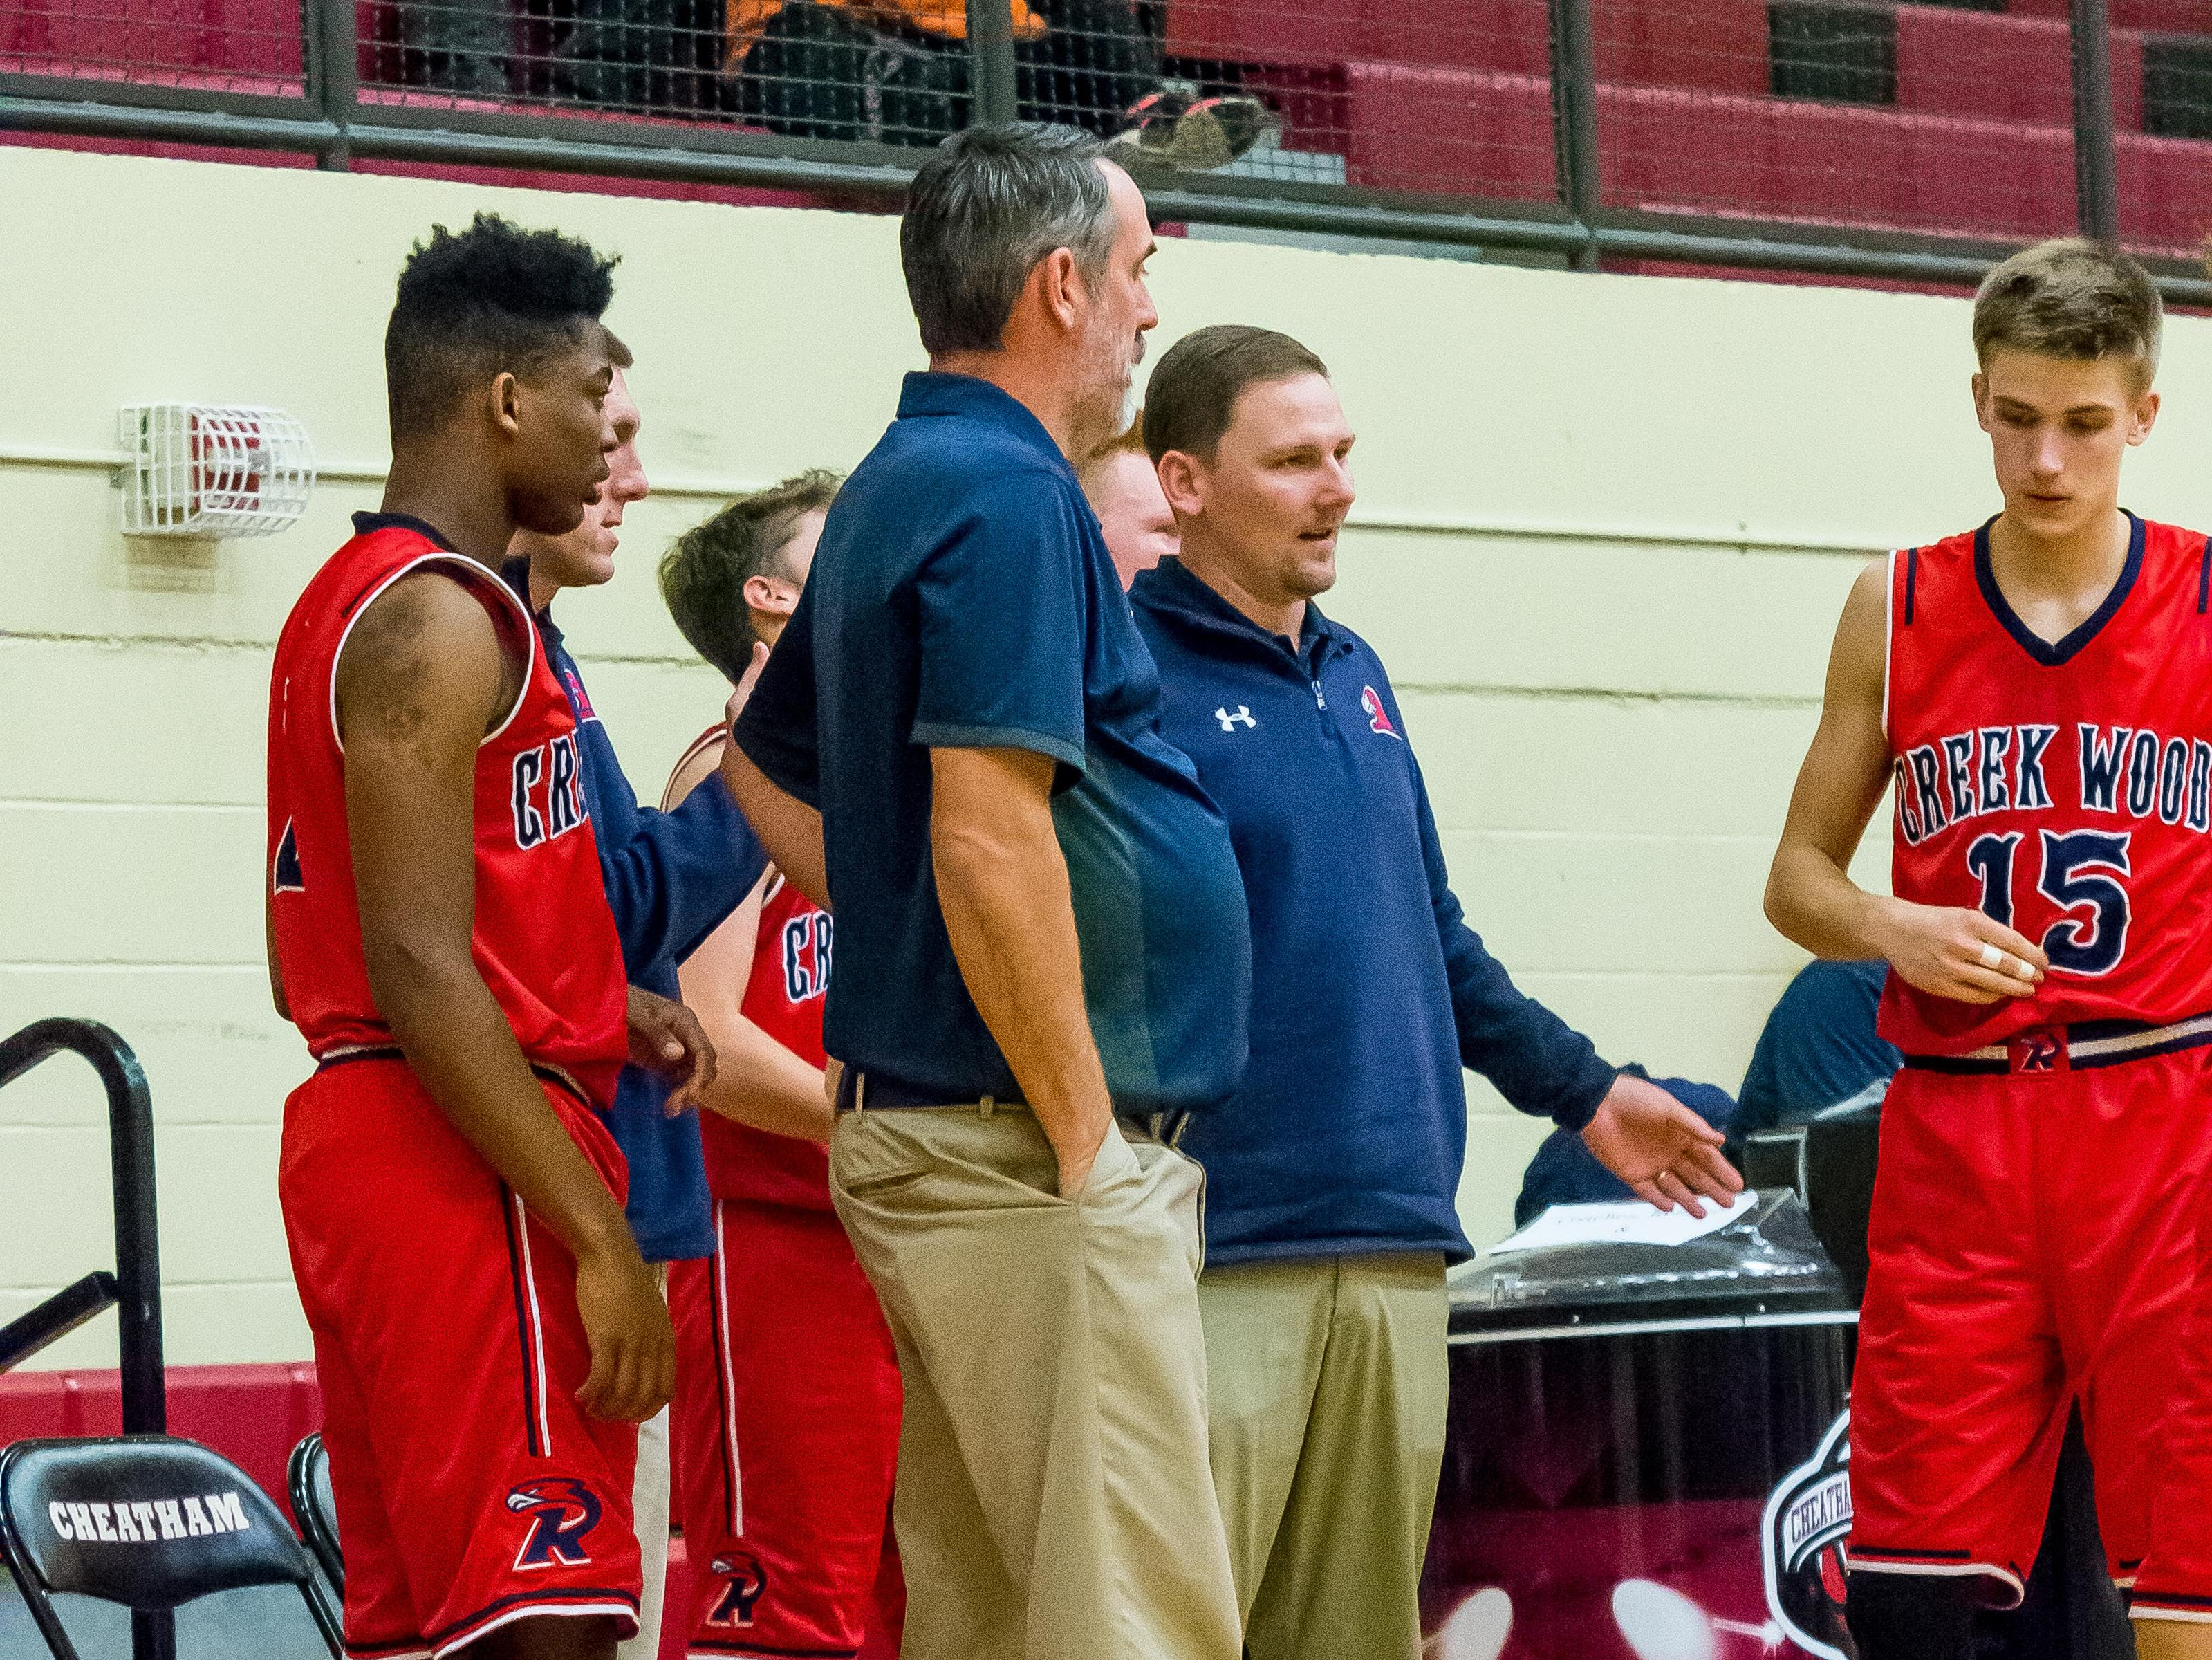 Creek Wood coach Charles Taylor talks to a player during their game with Cheatham County.